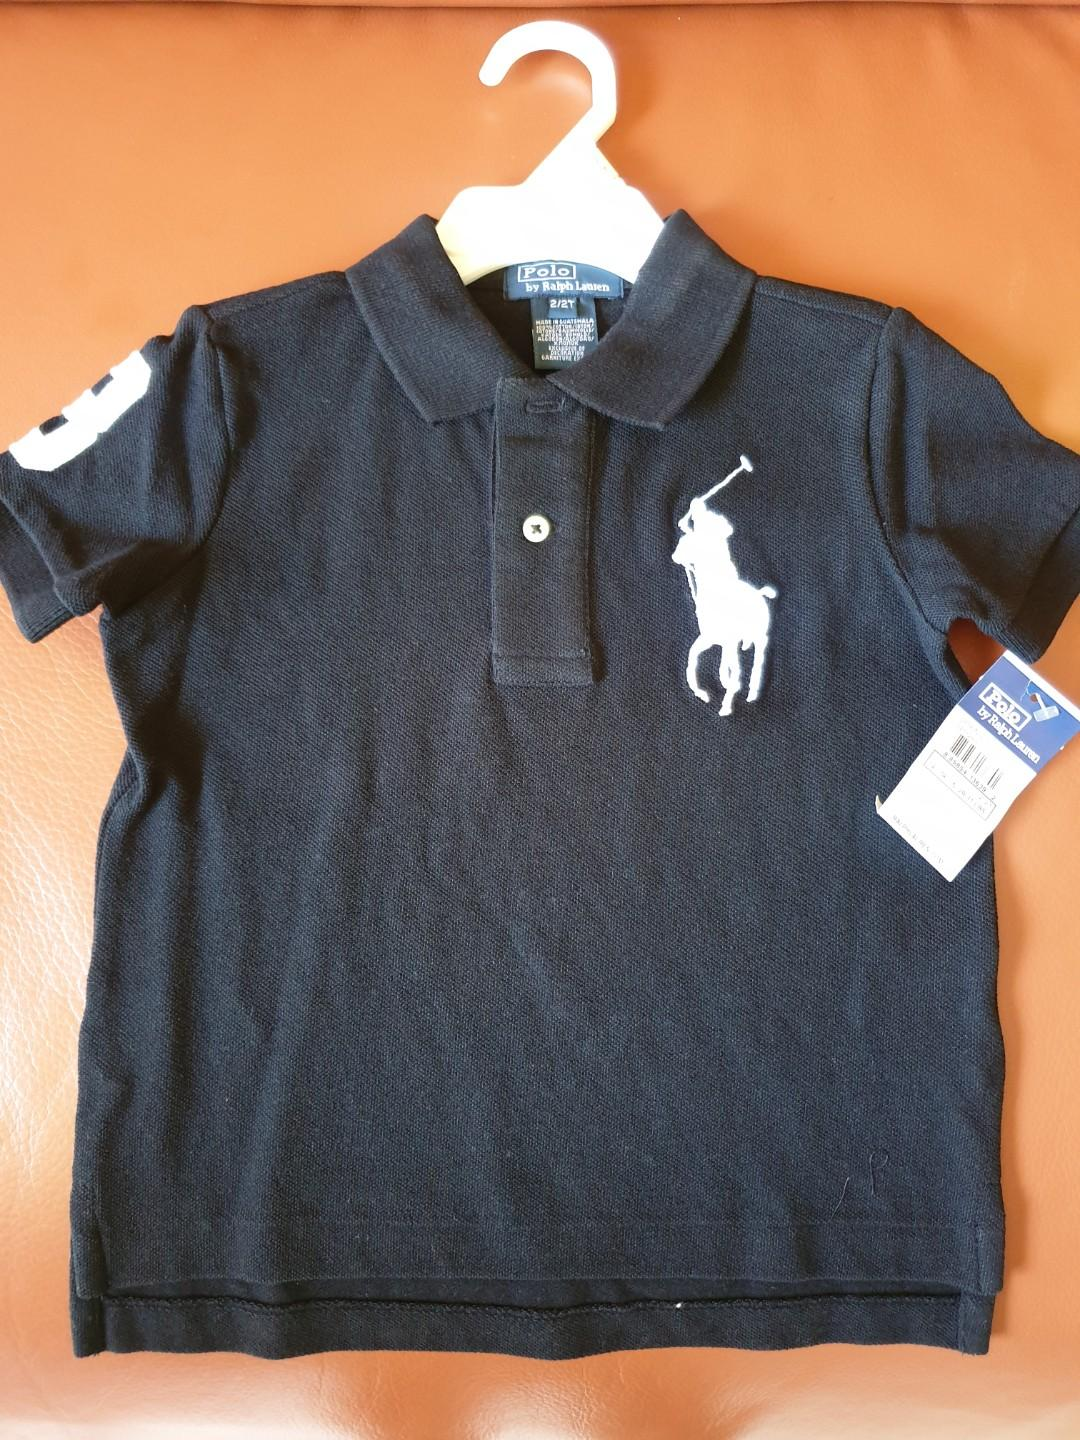 c19e55c2 Authentic Ralph Lauren Polo T-shirt for 2 years old, Babies & Kids ...